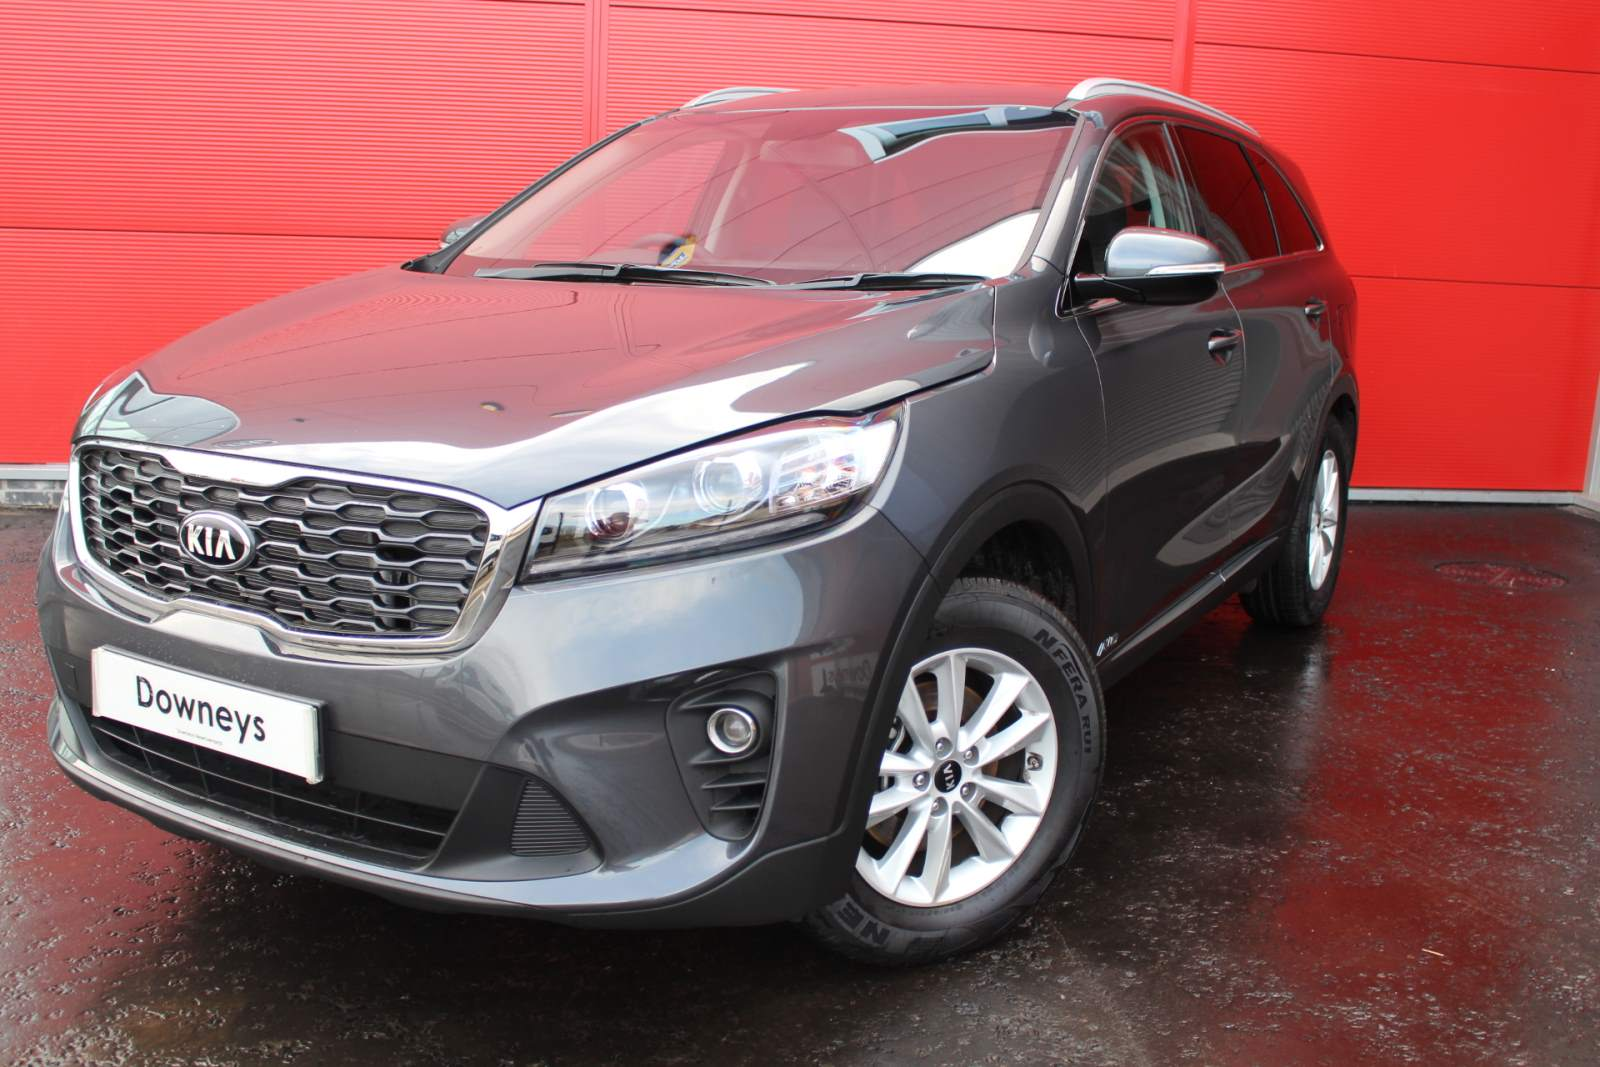 Kia SORENTO KX-1 CRDI ISG 4X4 7 Seater FULL KIA WARRANTY UNTIL JULY 2026